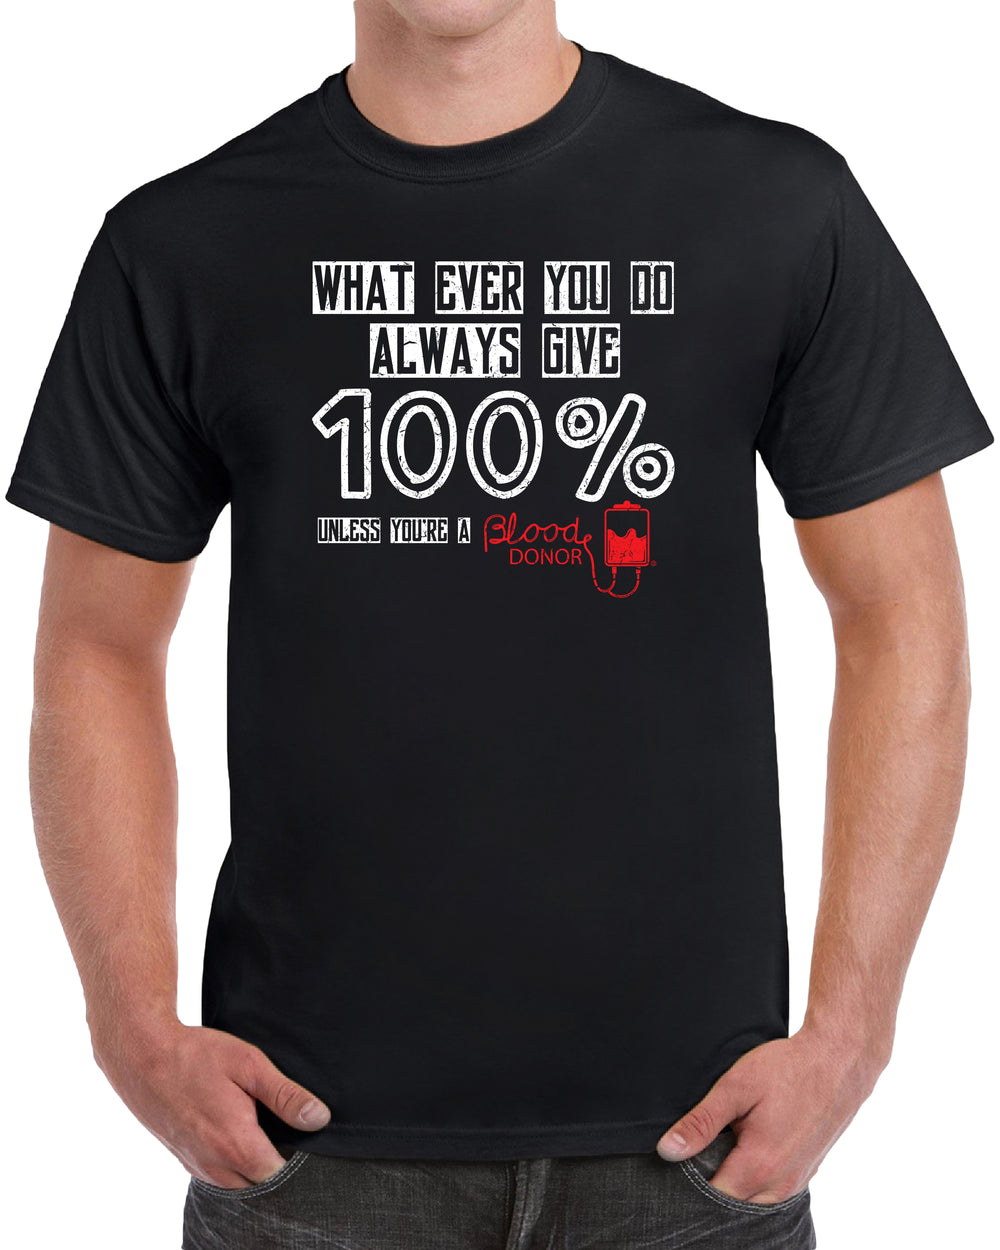 Whatever You Do Always Give 100% Unless You're A Blood Donor - Distressed Print